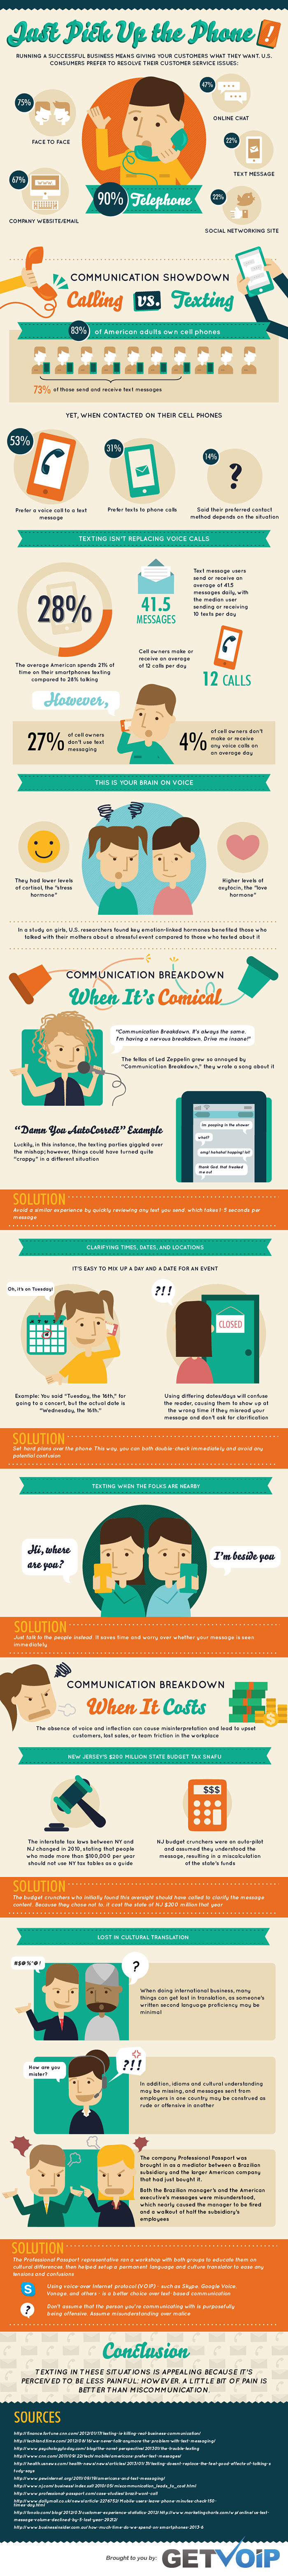 Infographic : Just Pick Up The Phone!